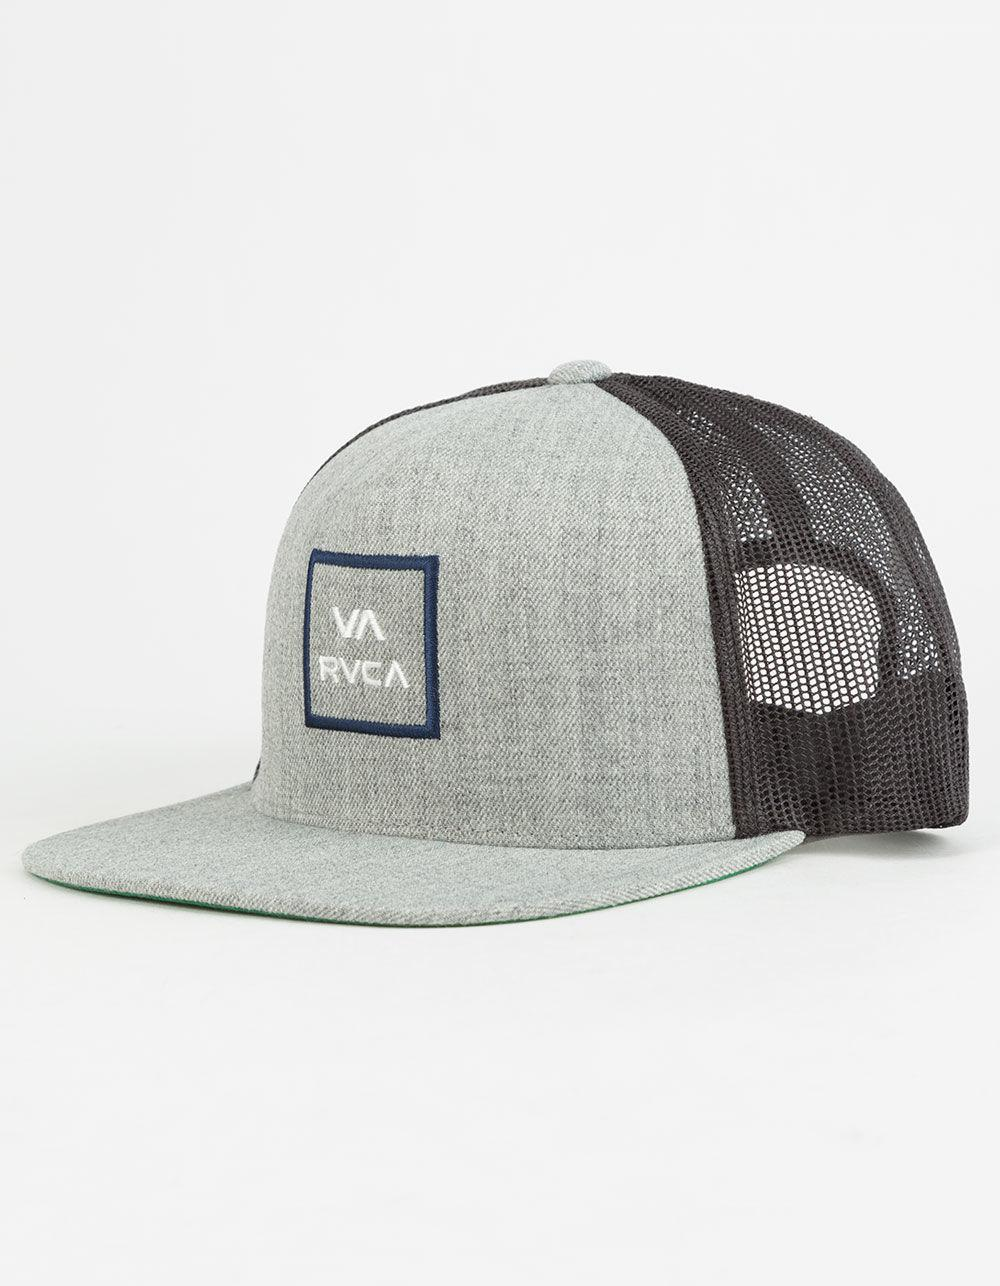 buy popular 96333 10415 ... get lyst rvca all the way heather grey mens trucker hat in gray for men  a0974